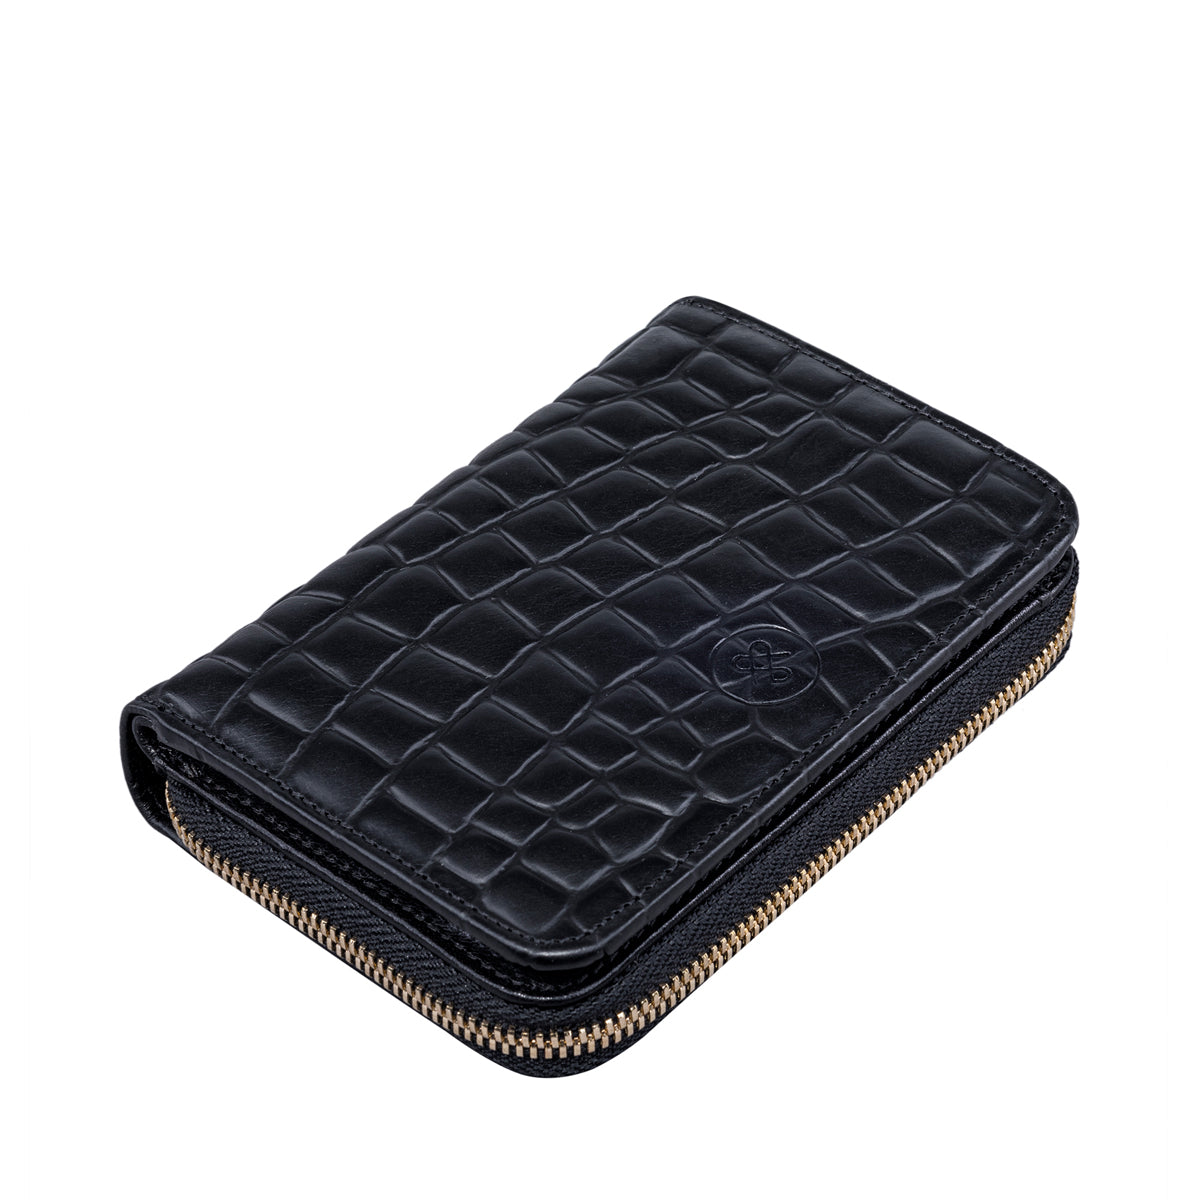 Image 4 of the 'Forino' Black Mock Croc Veg Tanned Leather Purse